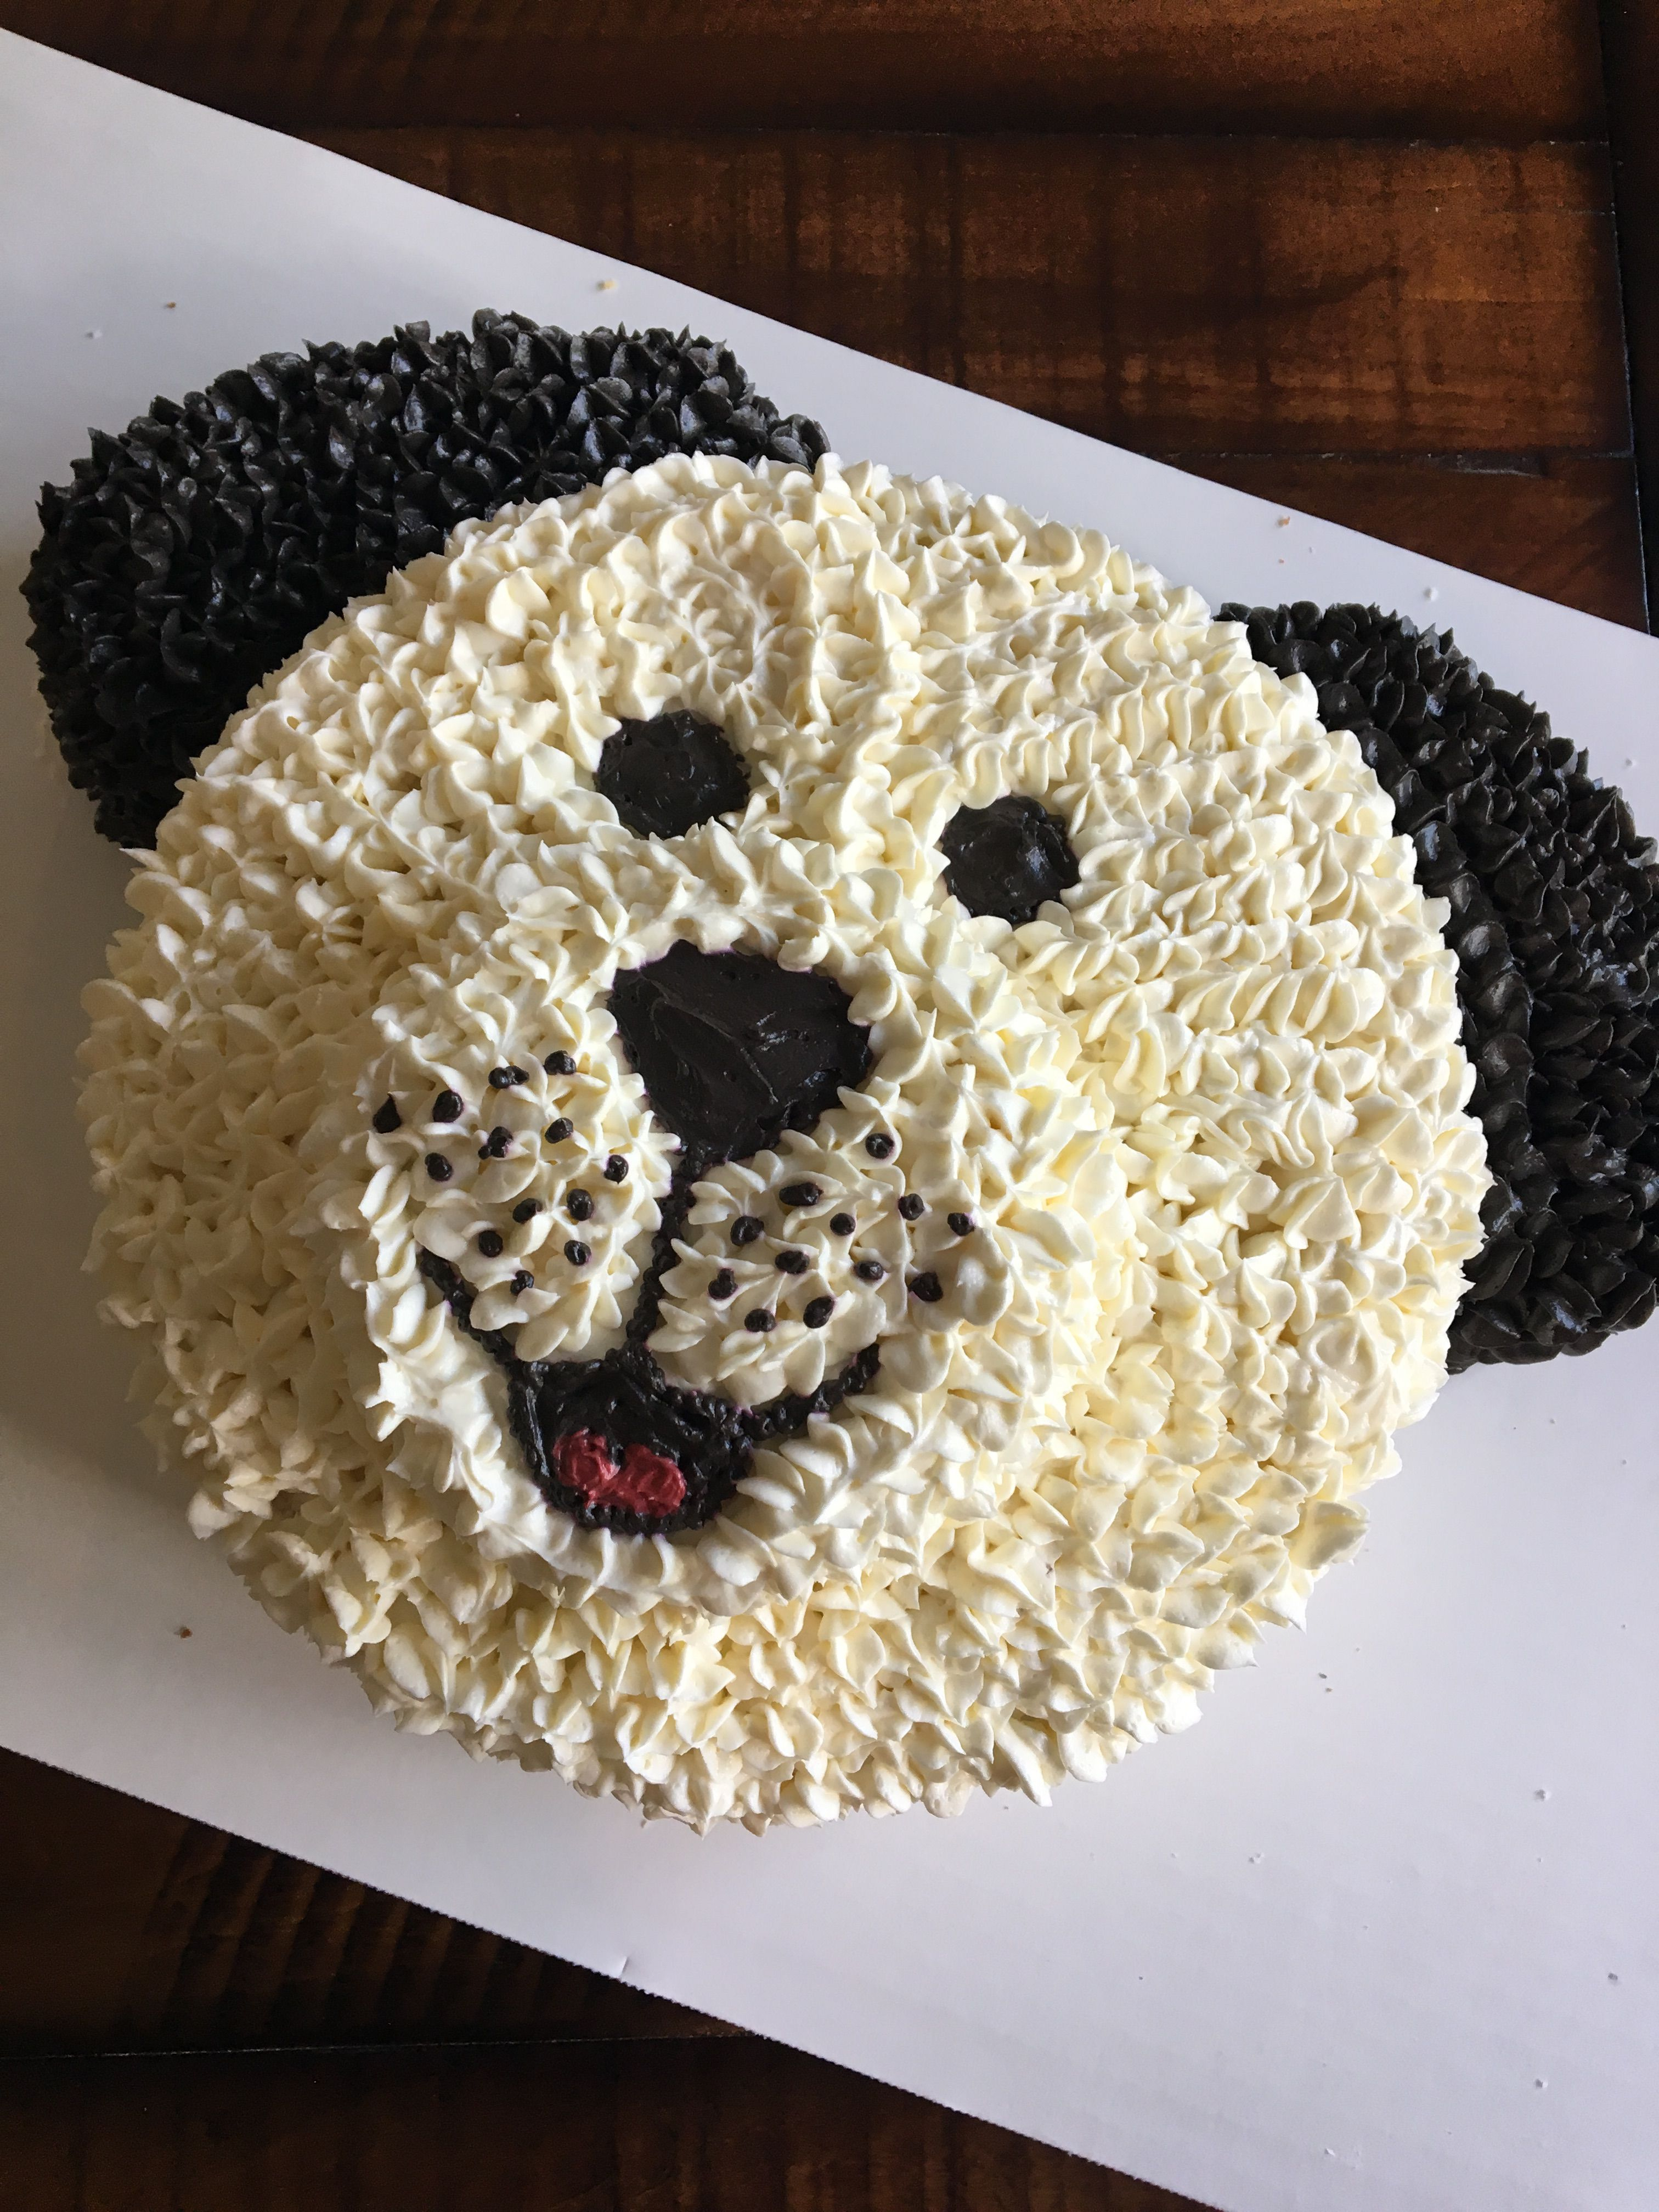 Black and white puppy cake for birthday party use star tip to